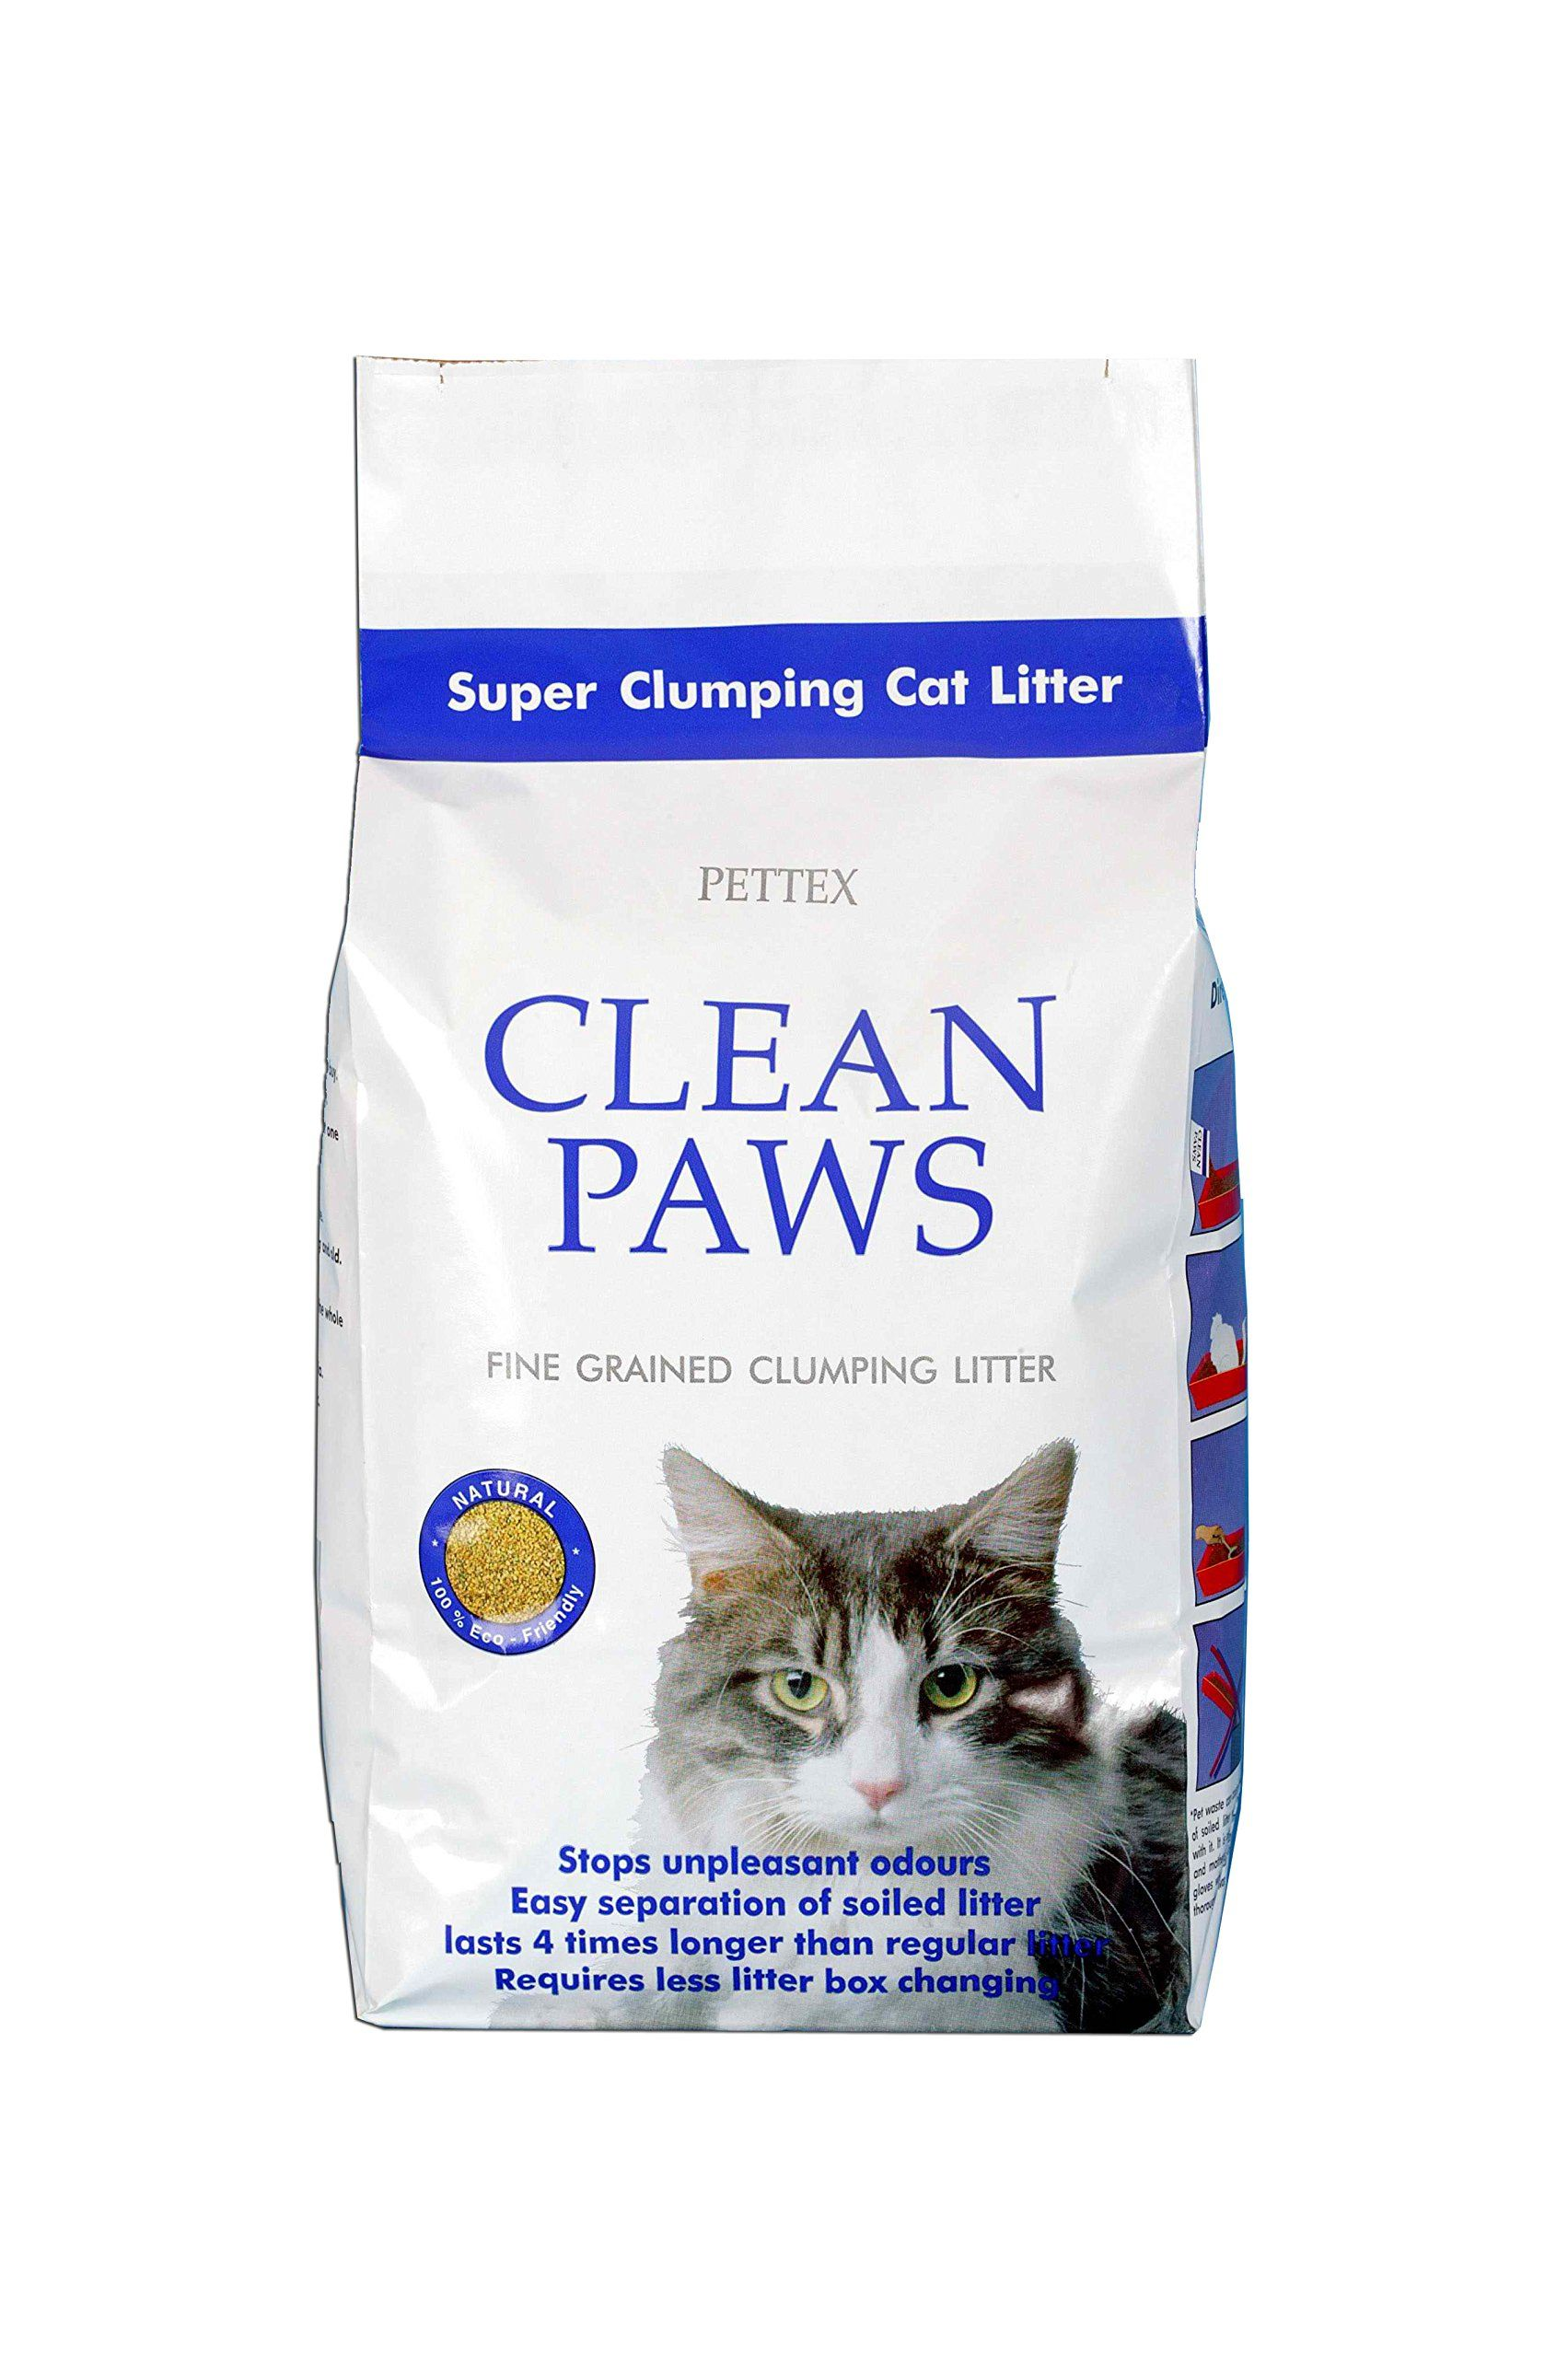 Pettex Clean Paws Super Clumping Ultra Cat Litter 15kg Be Sure To Check Out This Awesome Product This Is An Af Paw Cleaner Cat Litter Clumping Cat Litter